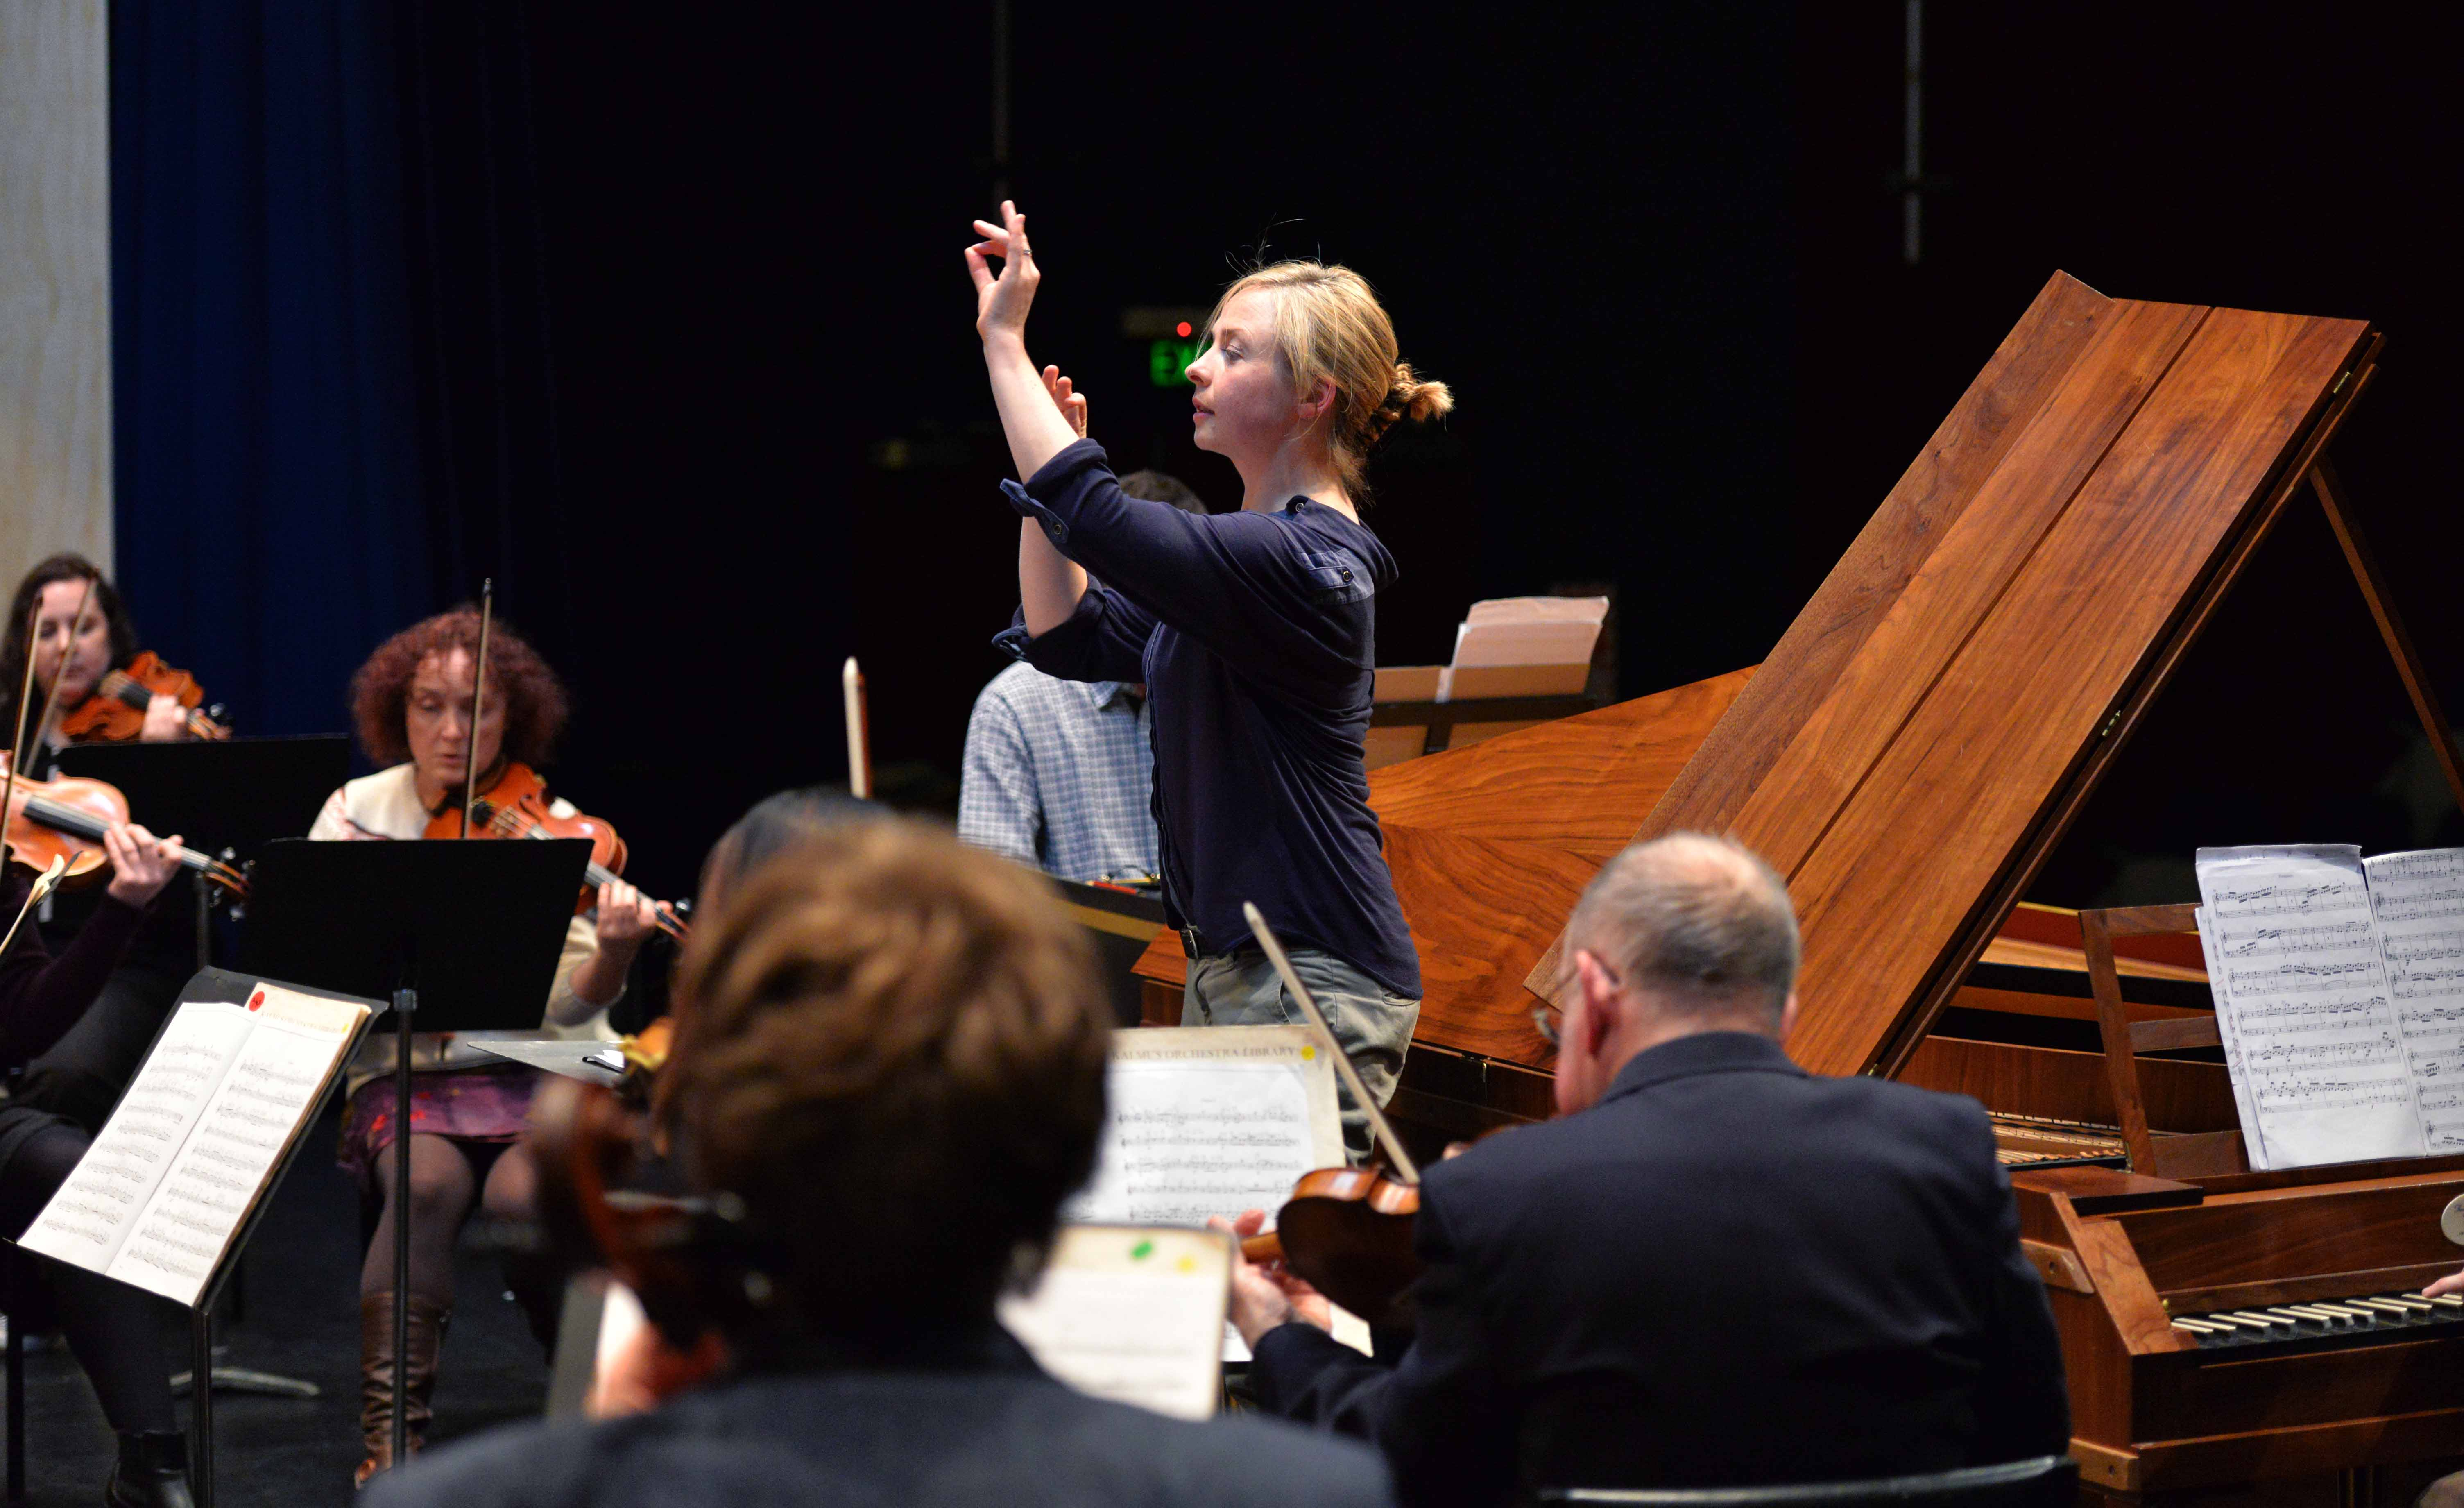 Conductor Holly Mathieson